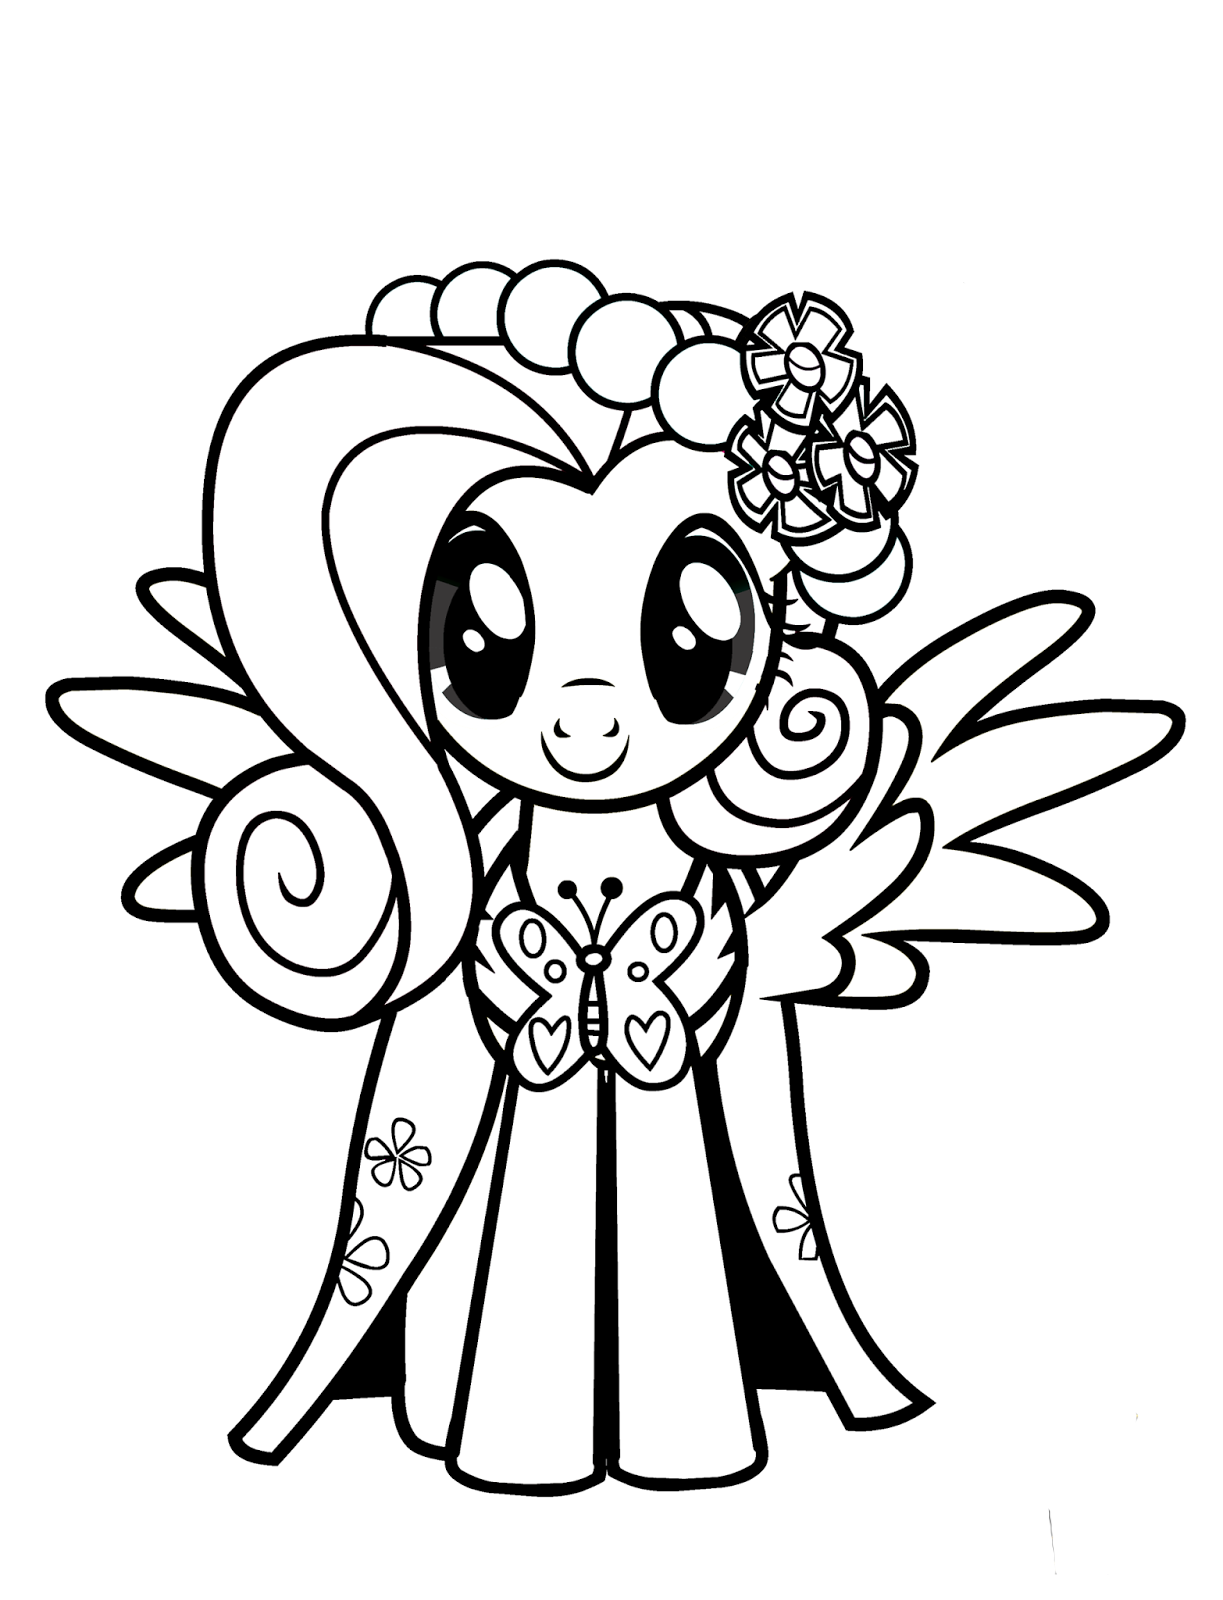 free printable coloring pages of my little pony - fluttershy coloring pages best coloring pages for kids